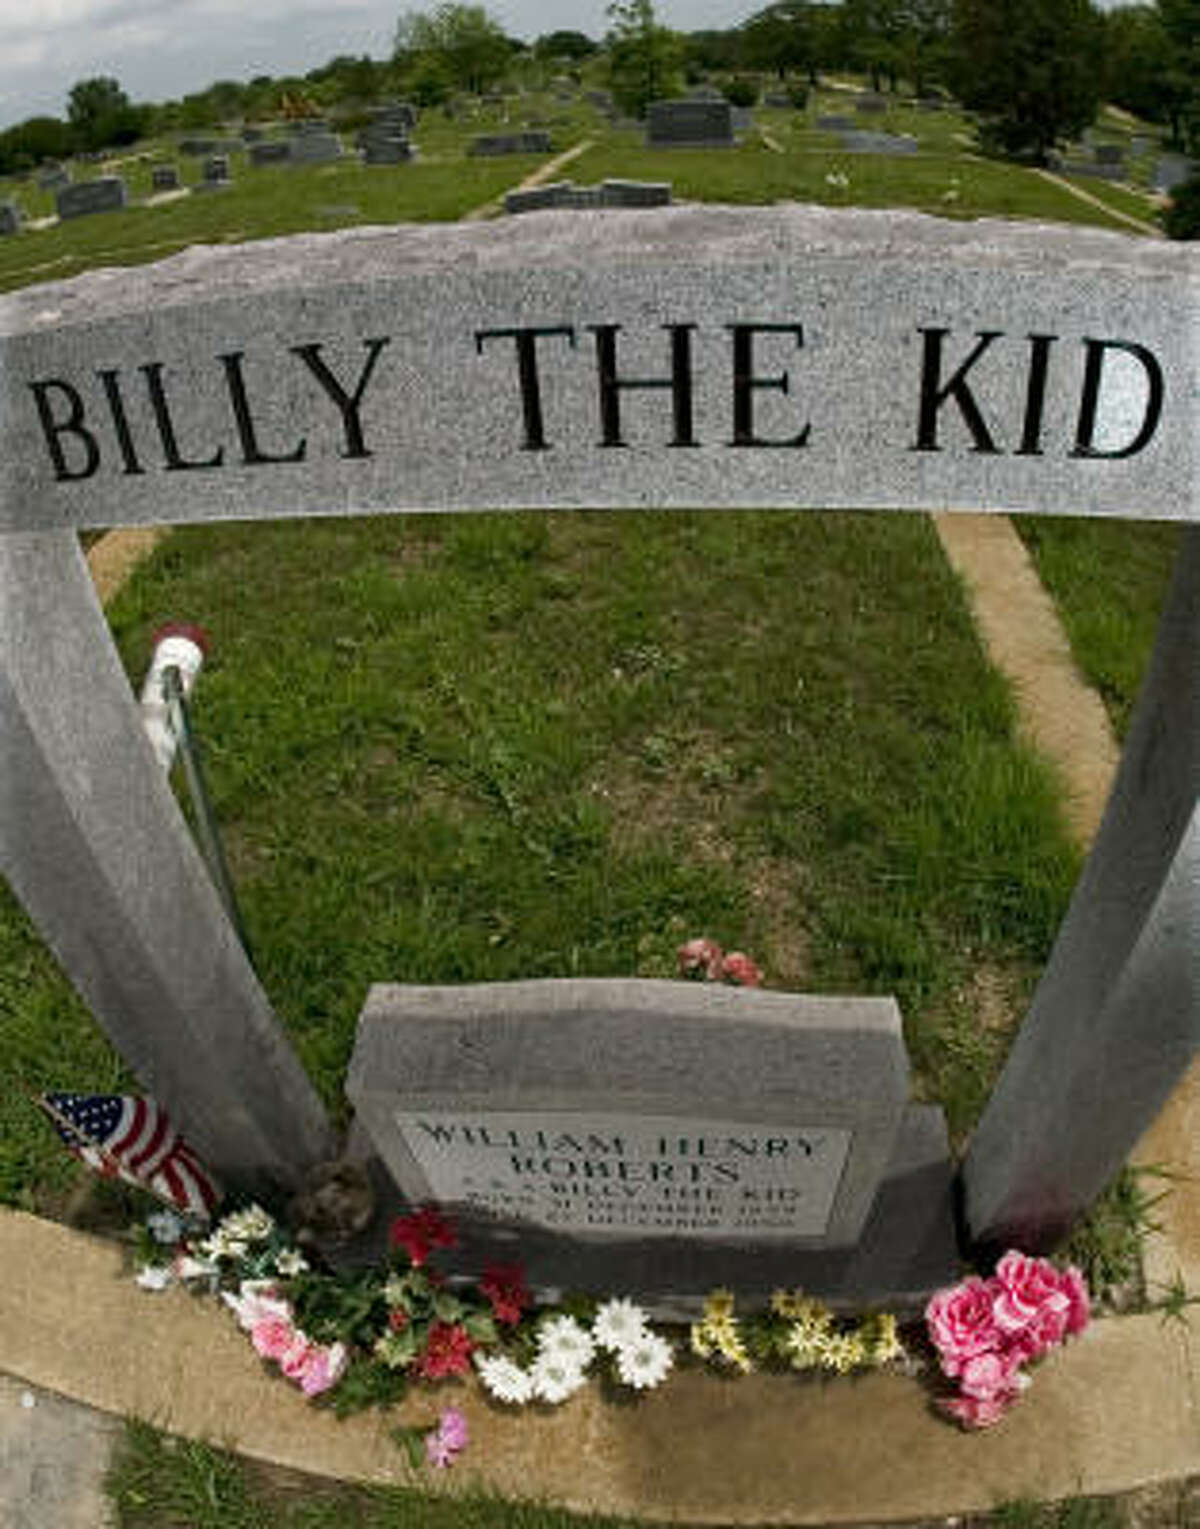 A former New Mexico lawman is seeking permission to exhume the body of ``Brushy Bill'' Roberts, a Billy the Kid claimant who died in 1950. But some locals say they prefer to let the matter lie.